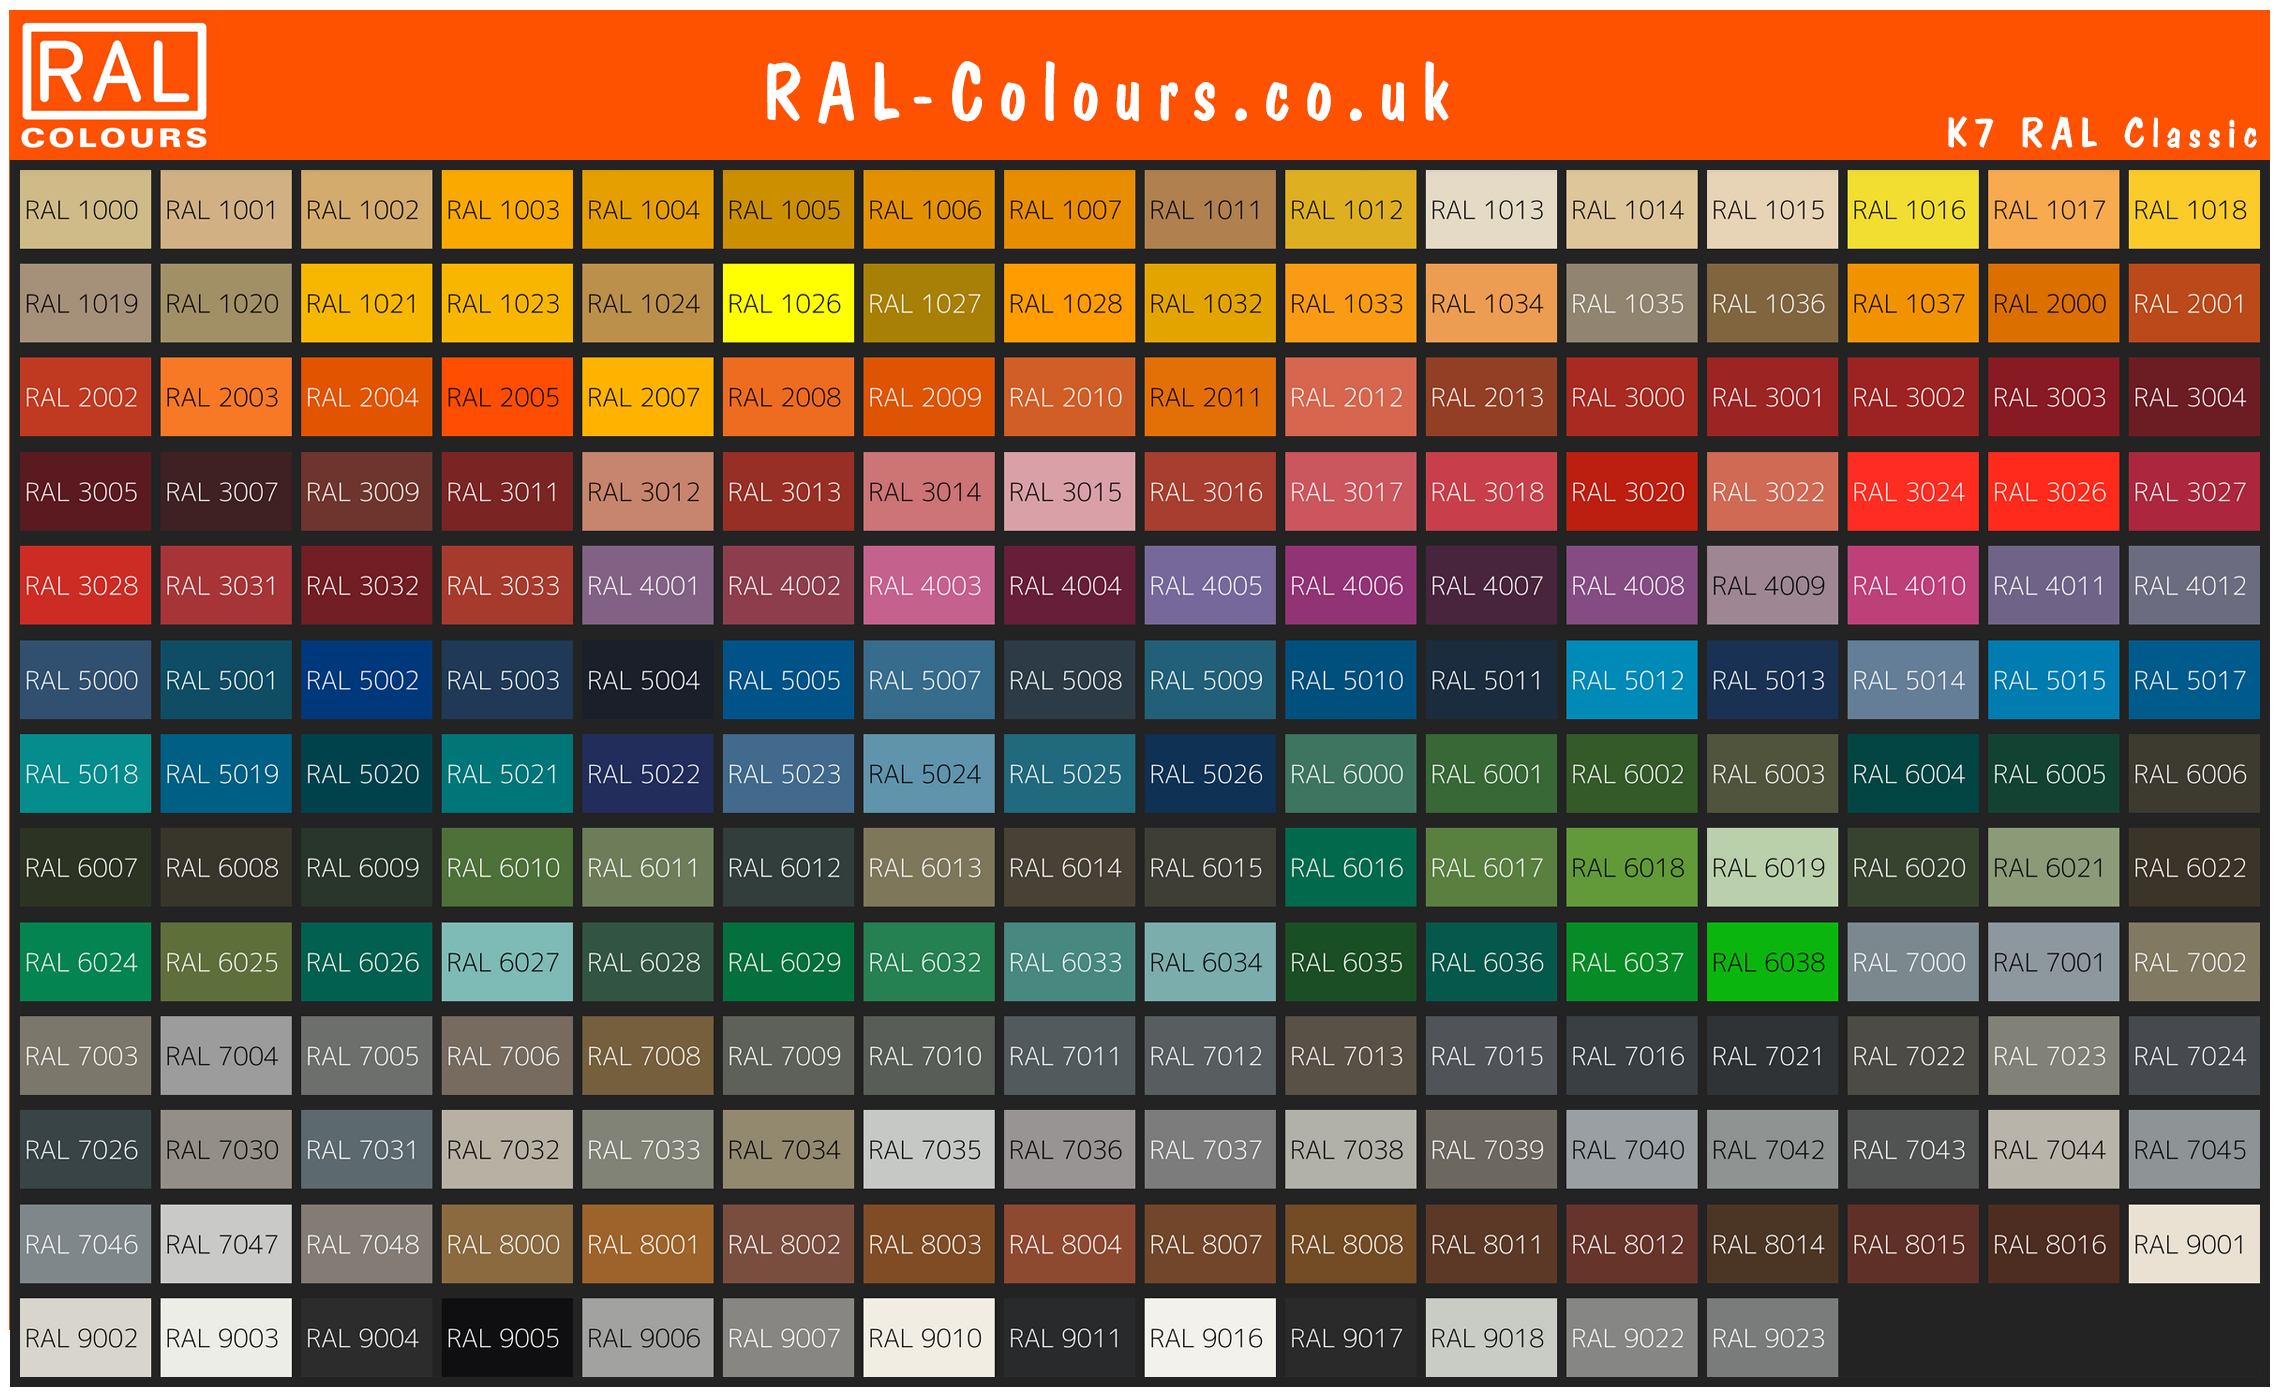 RAL Classic colour chart with names and RAL to RGB / CMYK conversion info